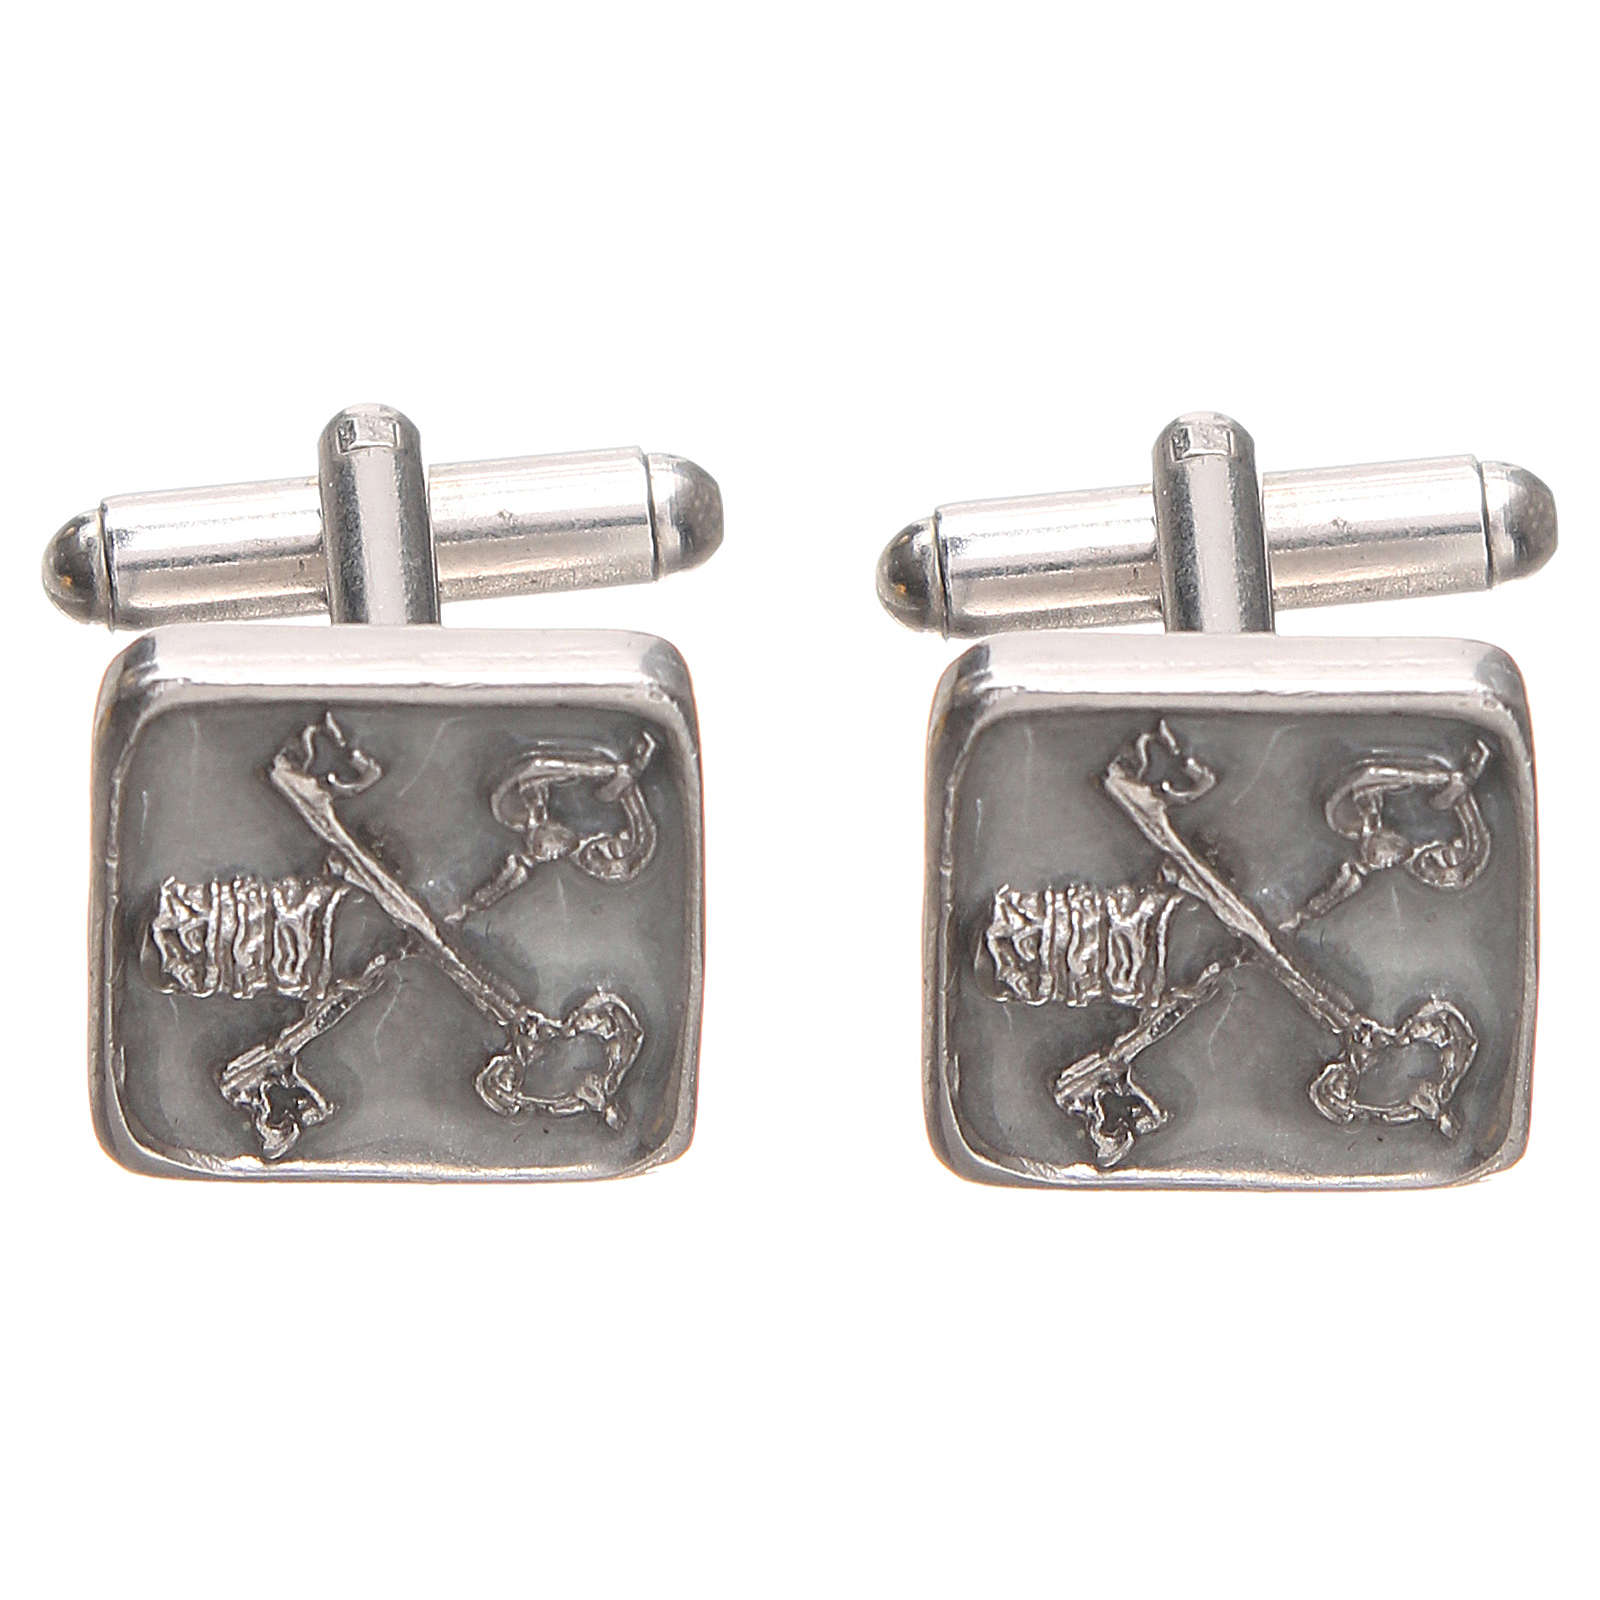 Cufflinks Silver 800 Vatican City keys 1,5x1,5cm 4